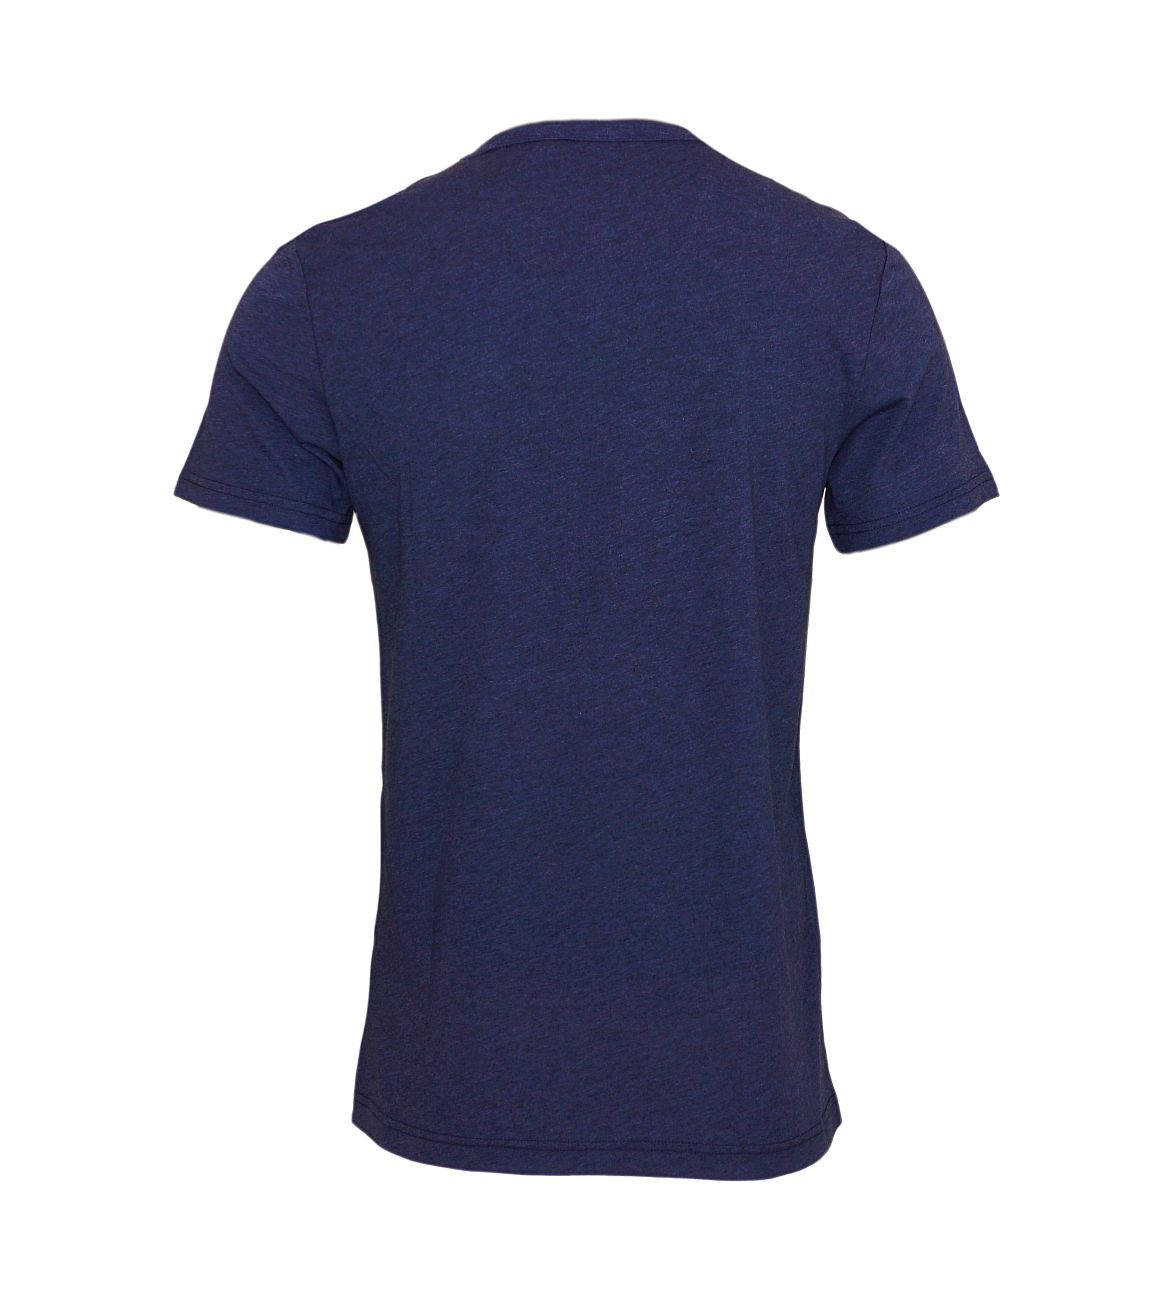 G-Star RAW T-Shirt Cadulor rt D08510.2757.6370 81 Sartho Blue Htr F18-GST1